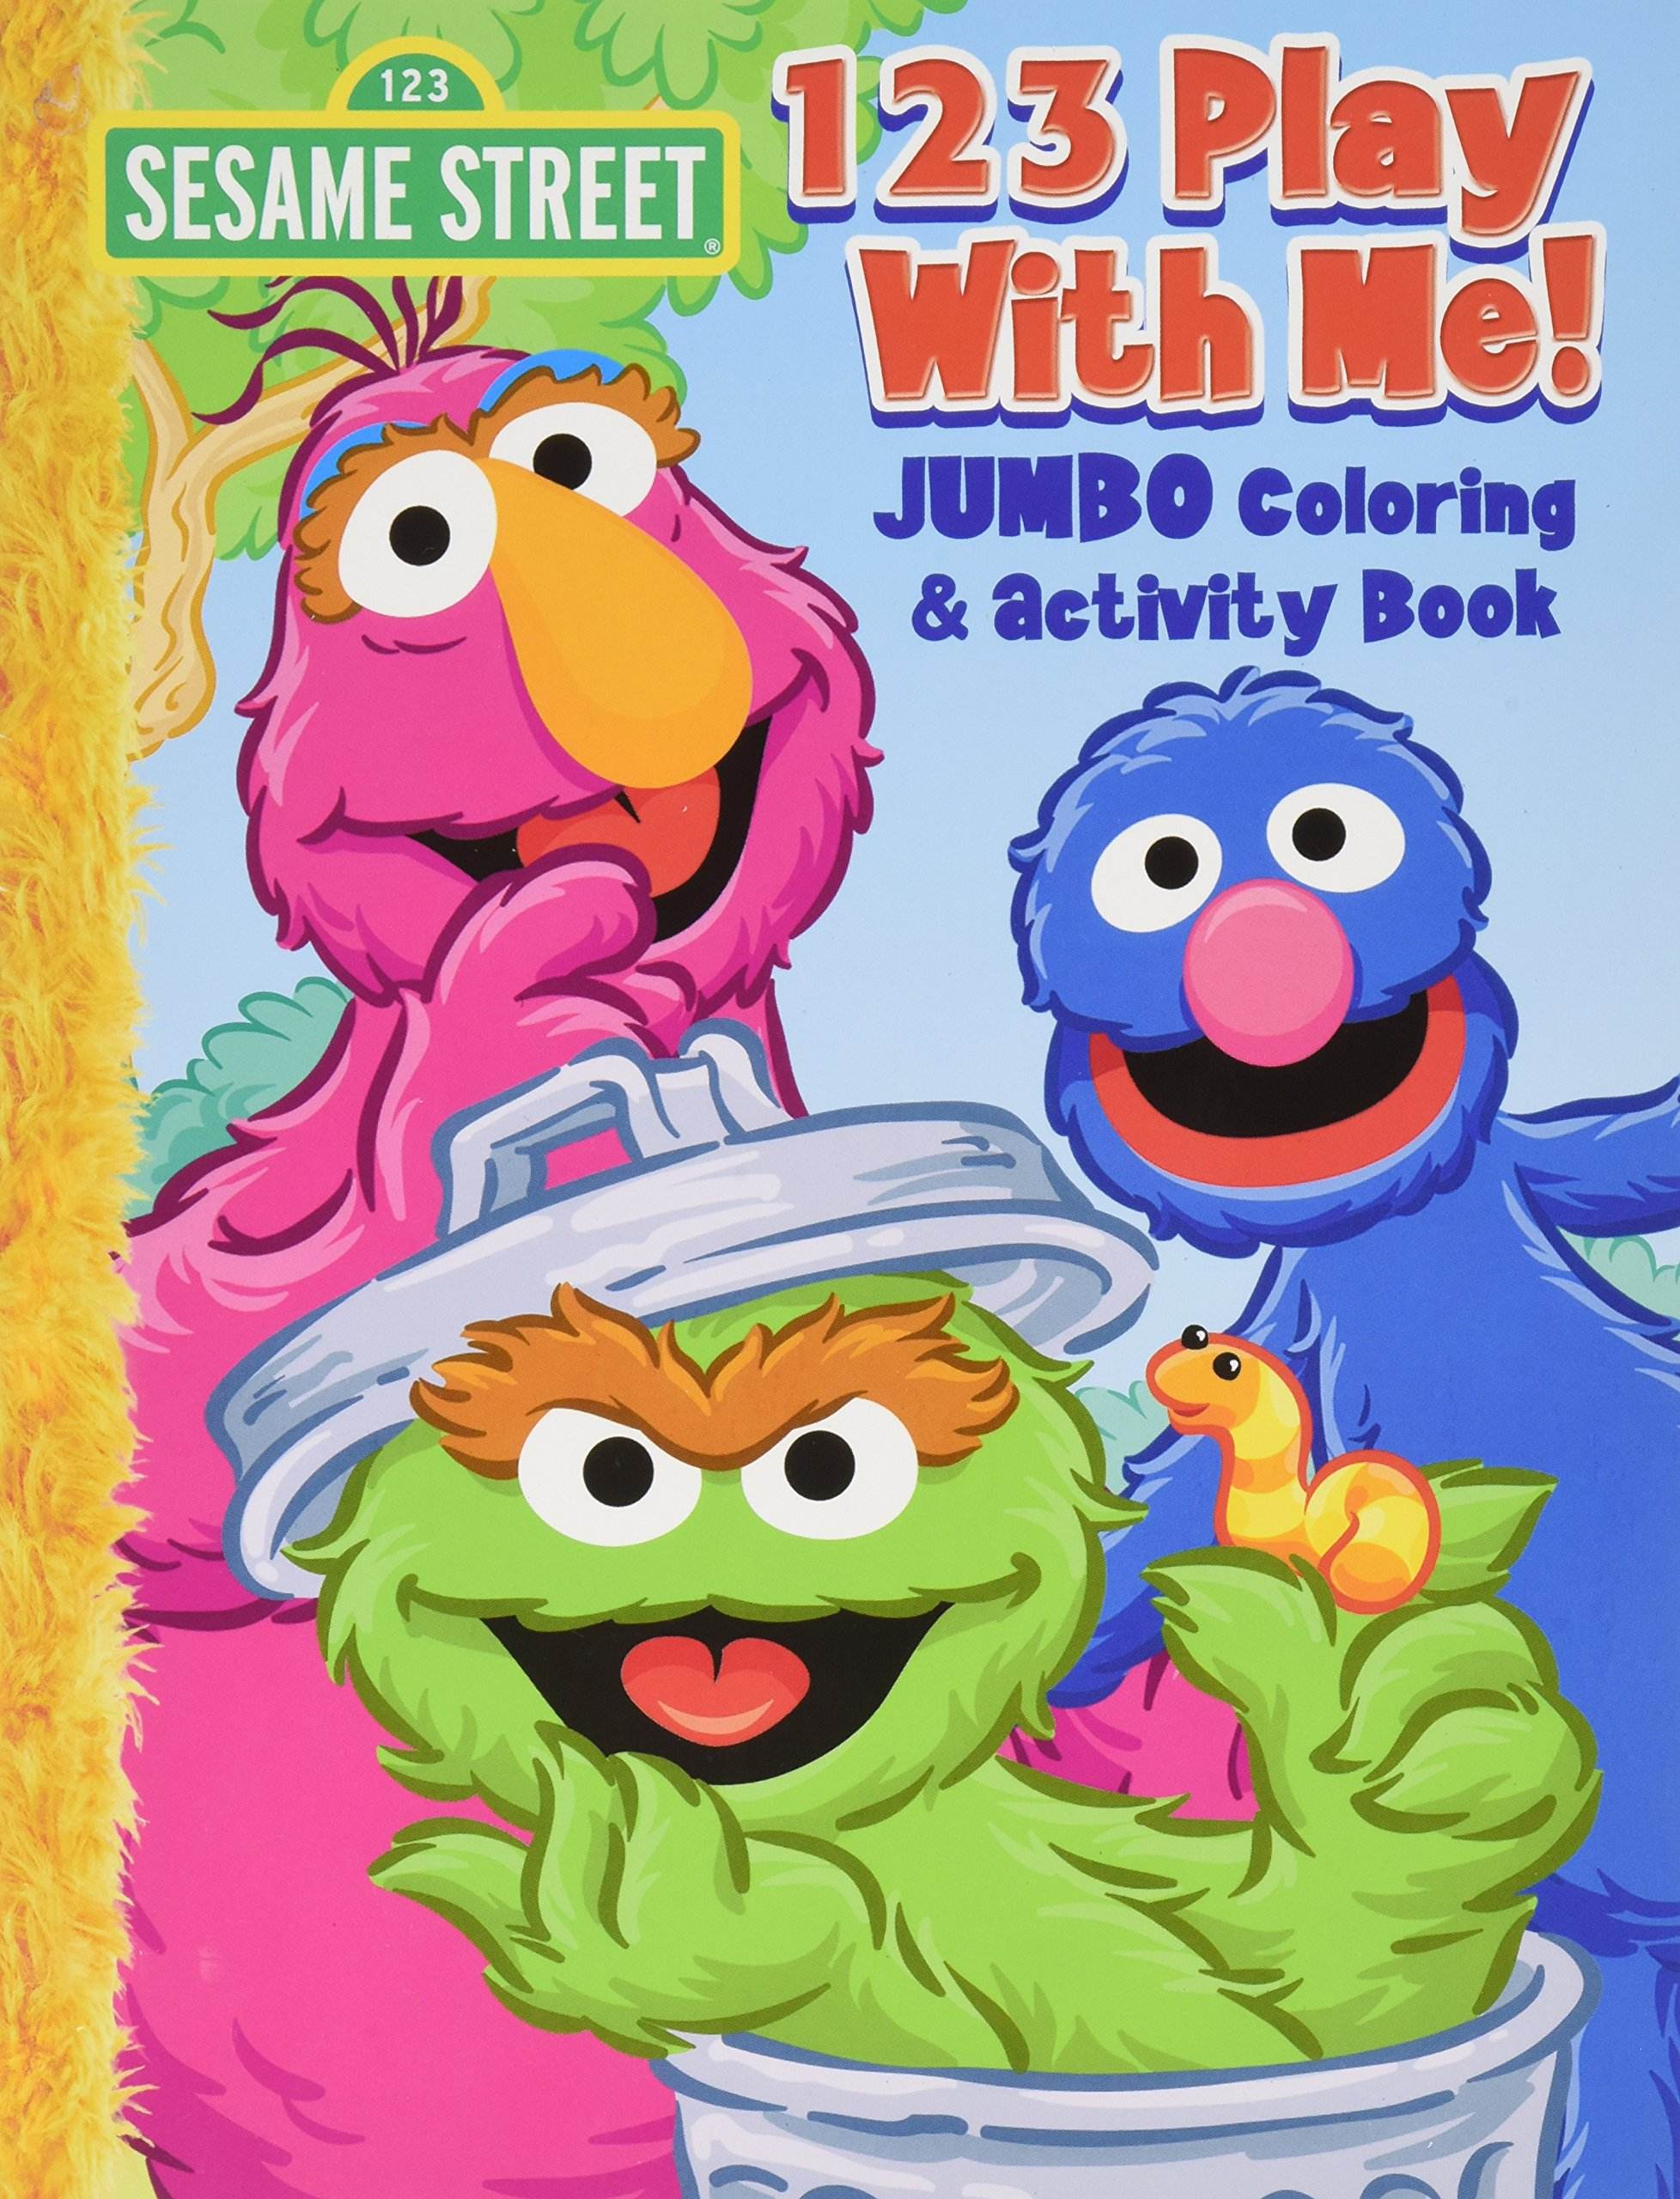 Sesame Street 123 Play with me Jumbo Coloring and Activity Book pdf